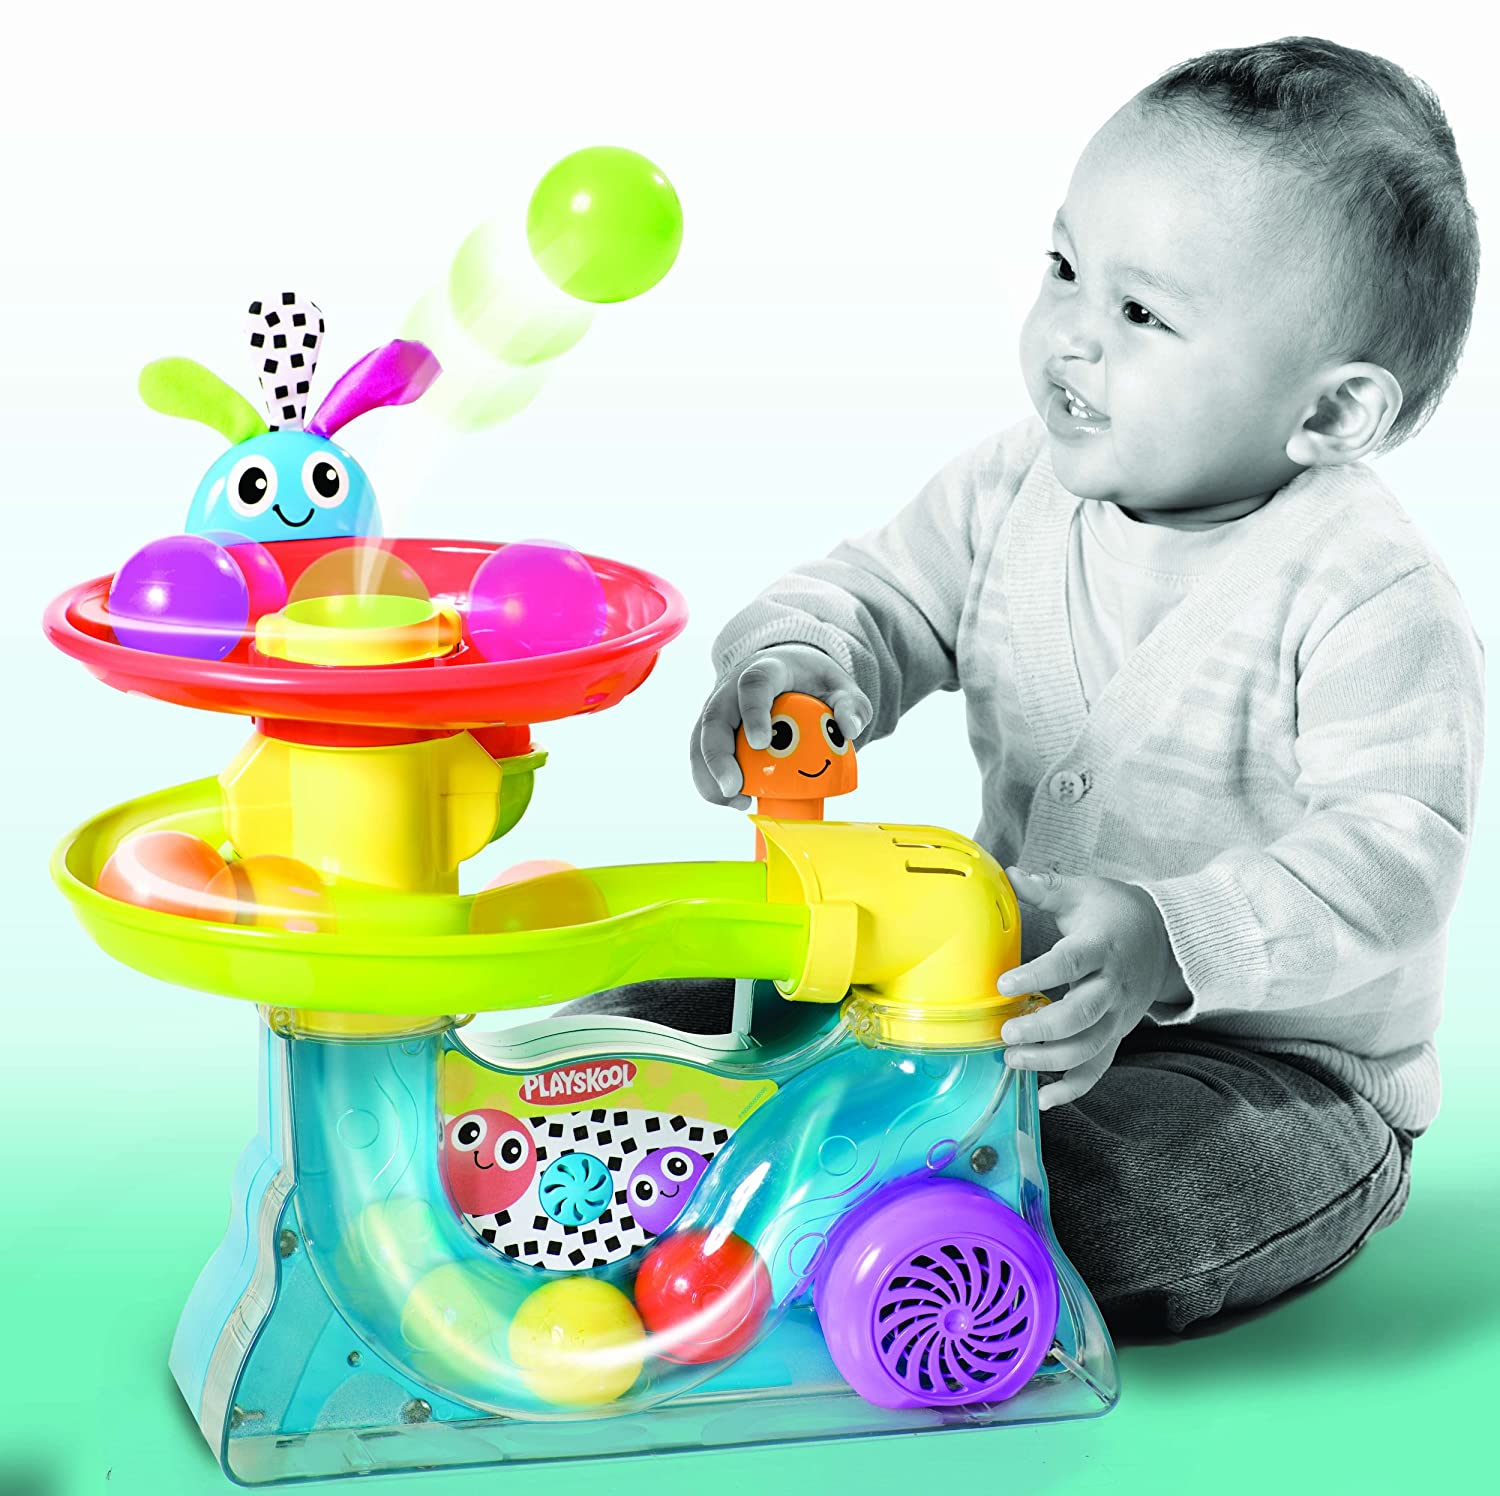 Best Ball Popper Toys For Kids : Top toys for month old babies